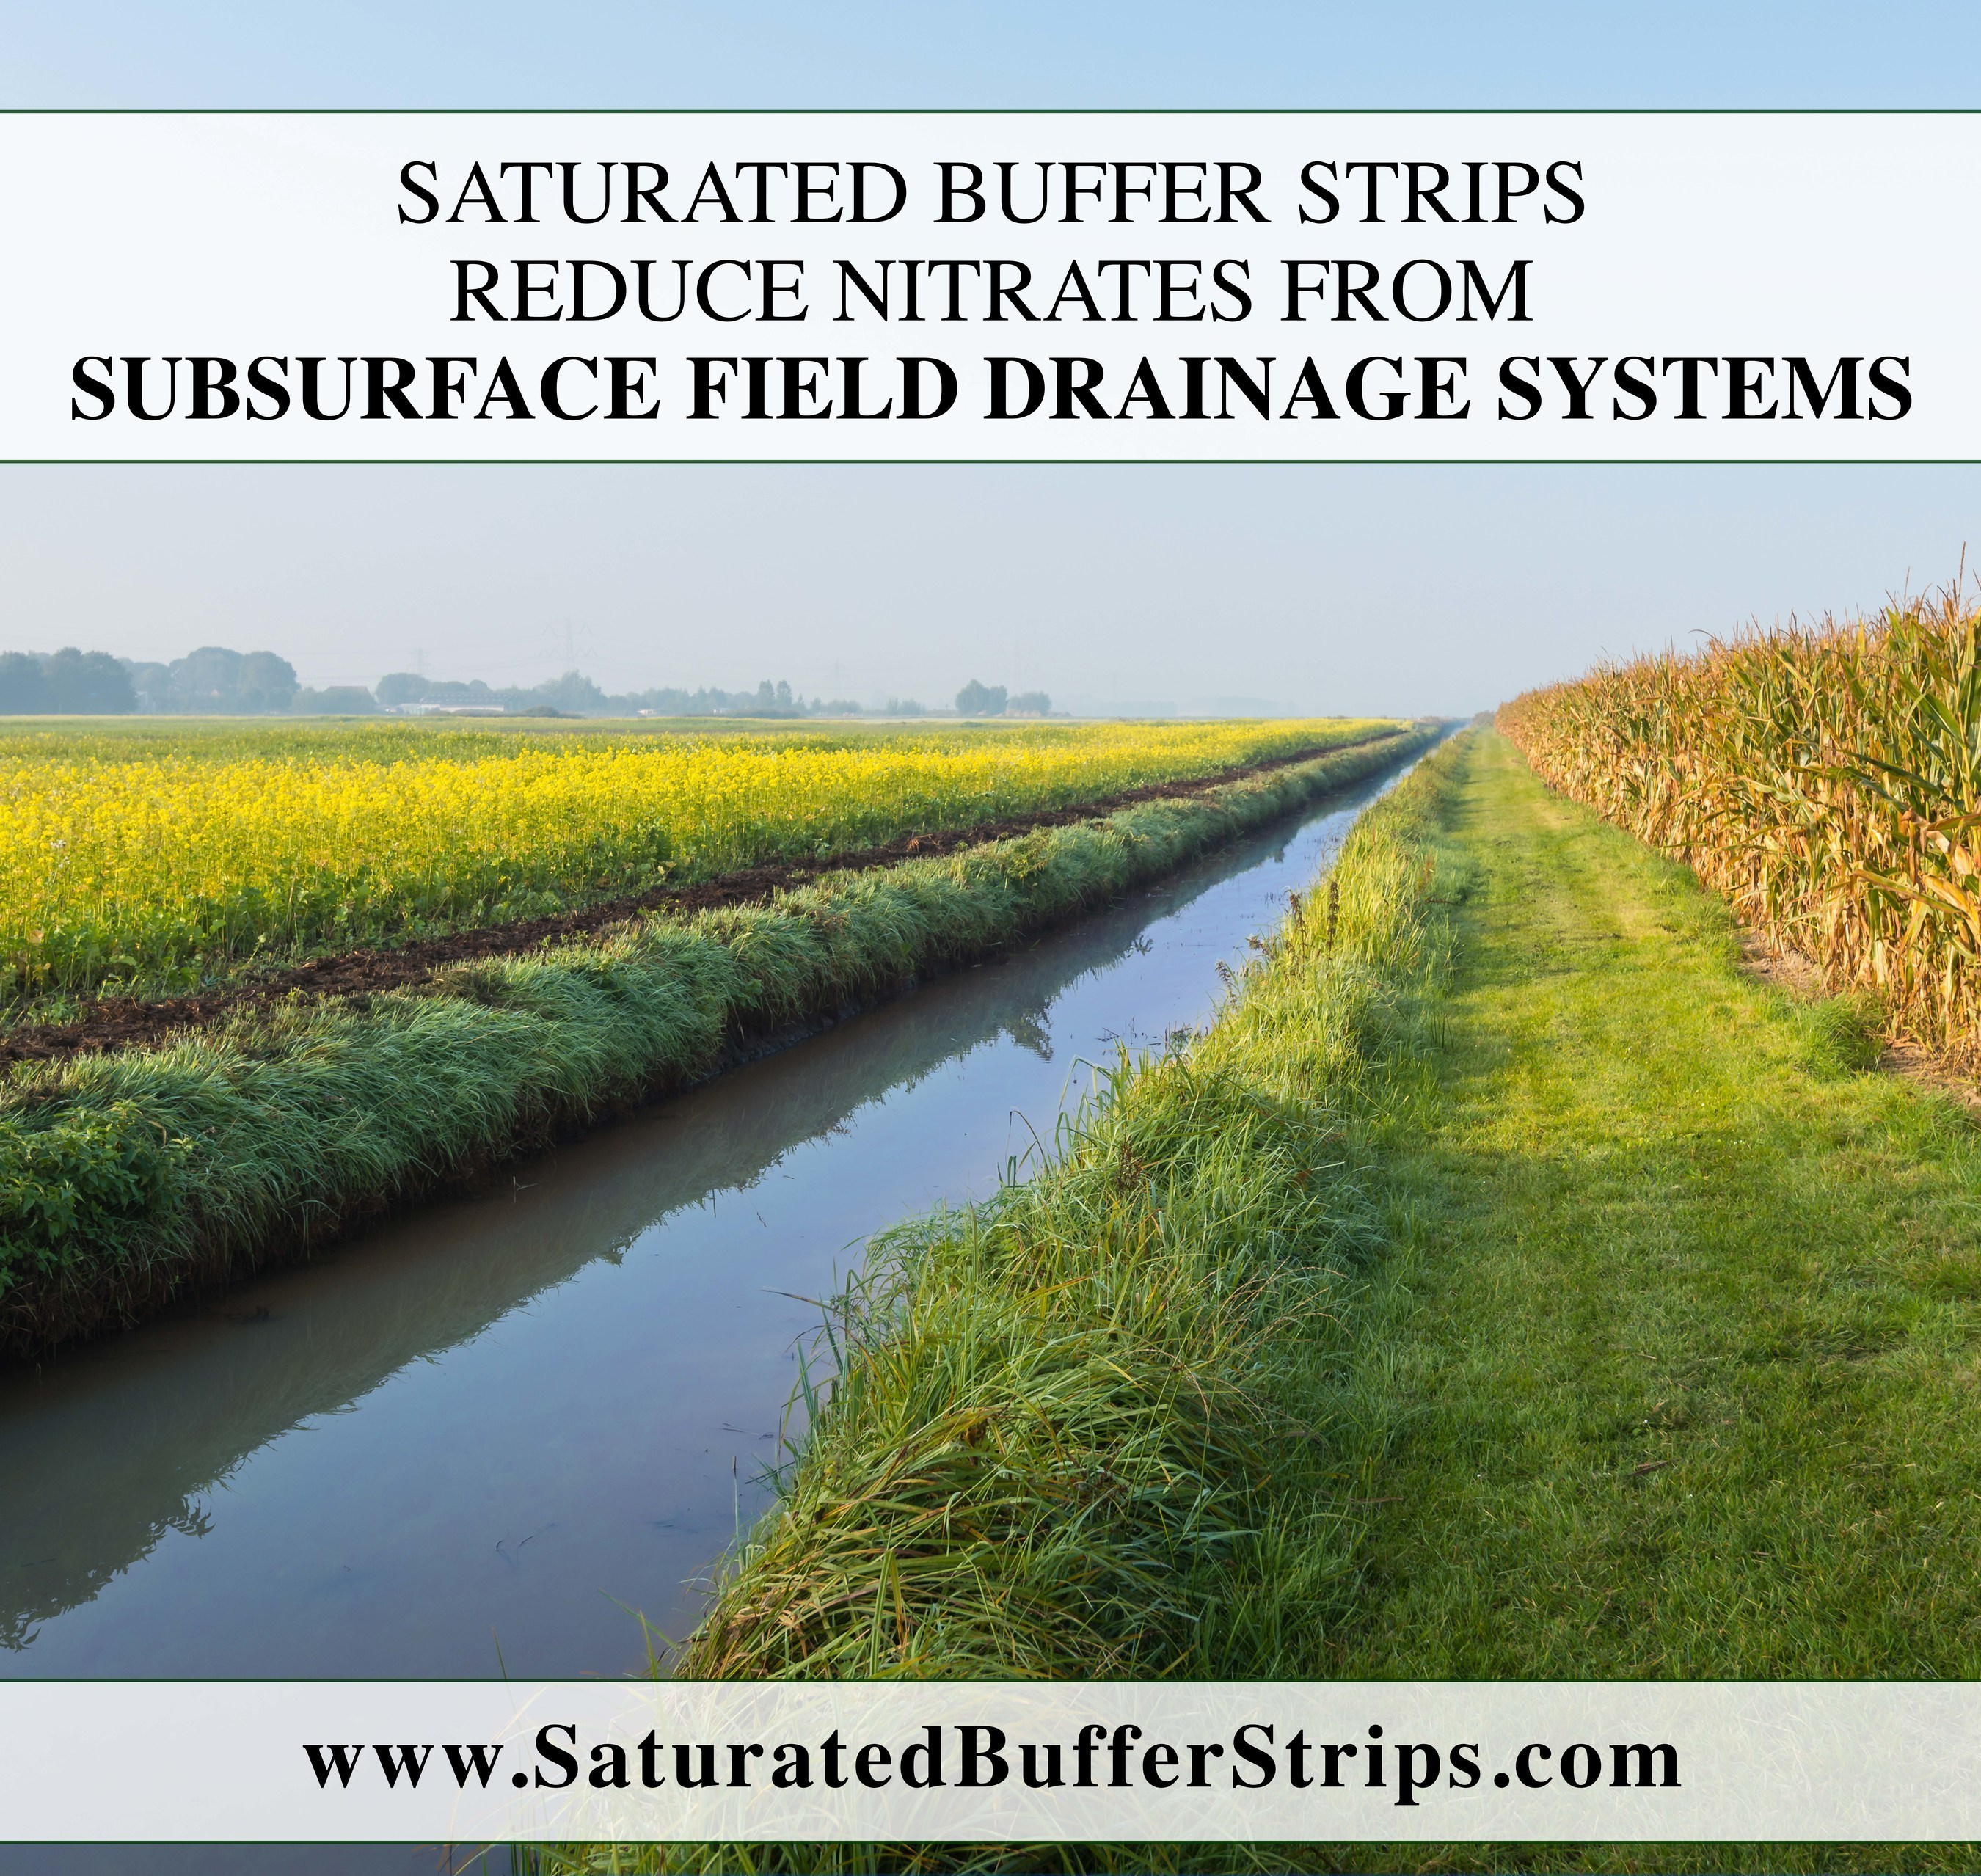 Research Substantiates that Saturated Buffers at Field Scale do Reduce Nitrates from Subsurface Field Drainage Systems